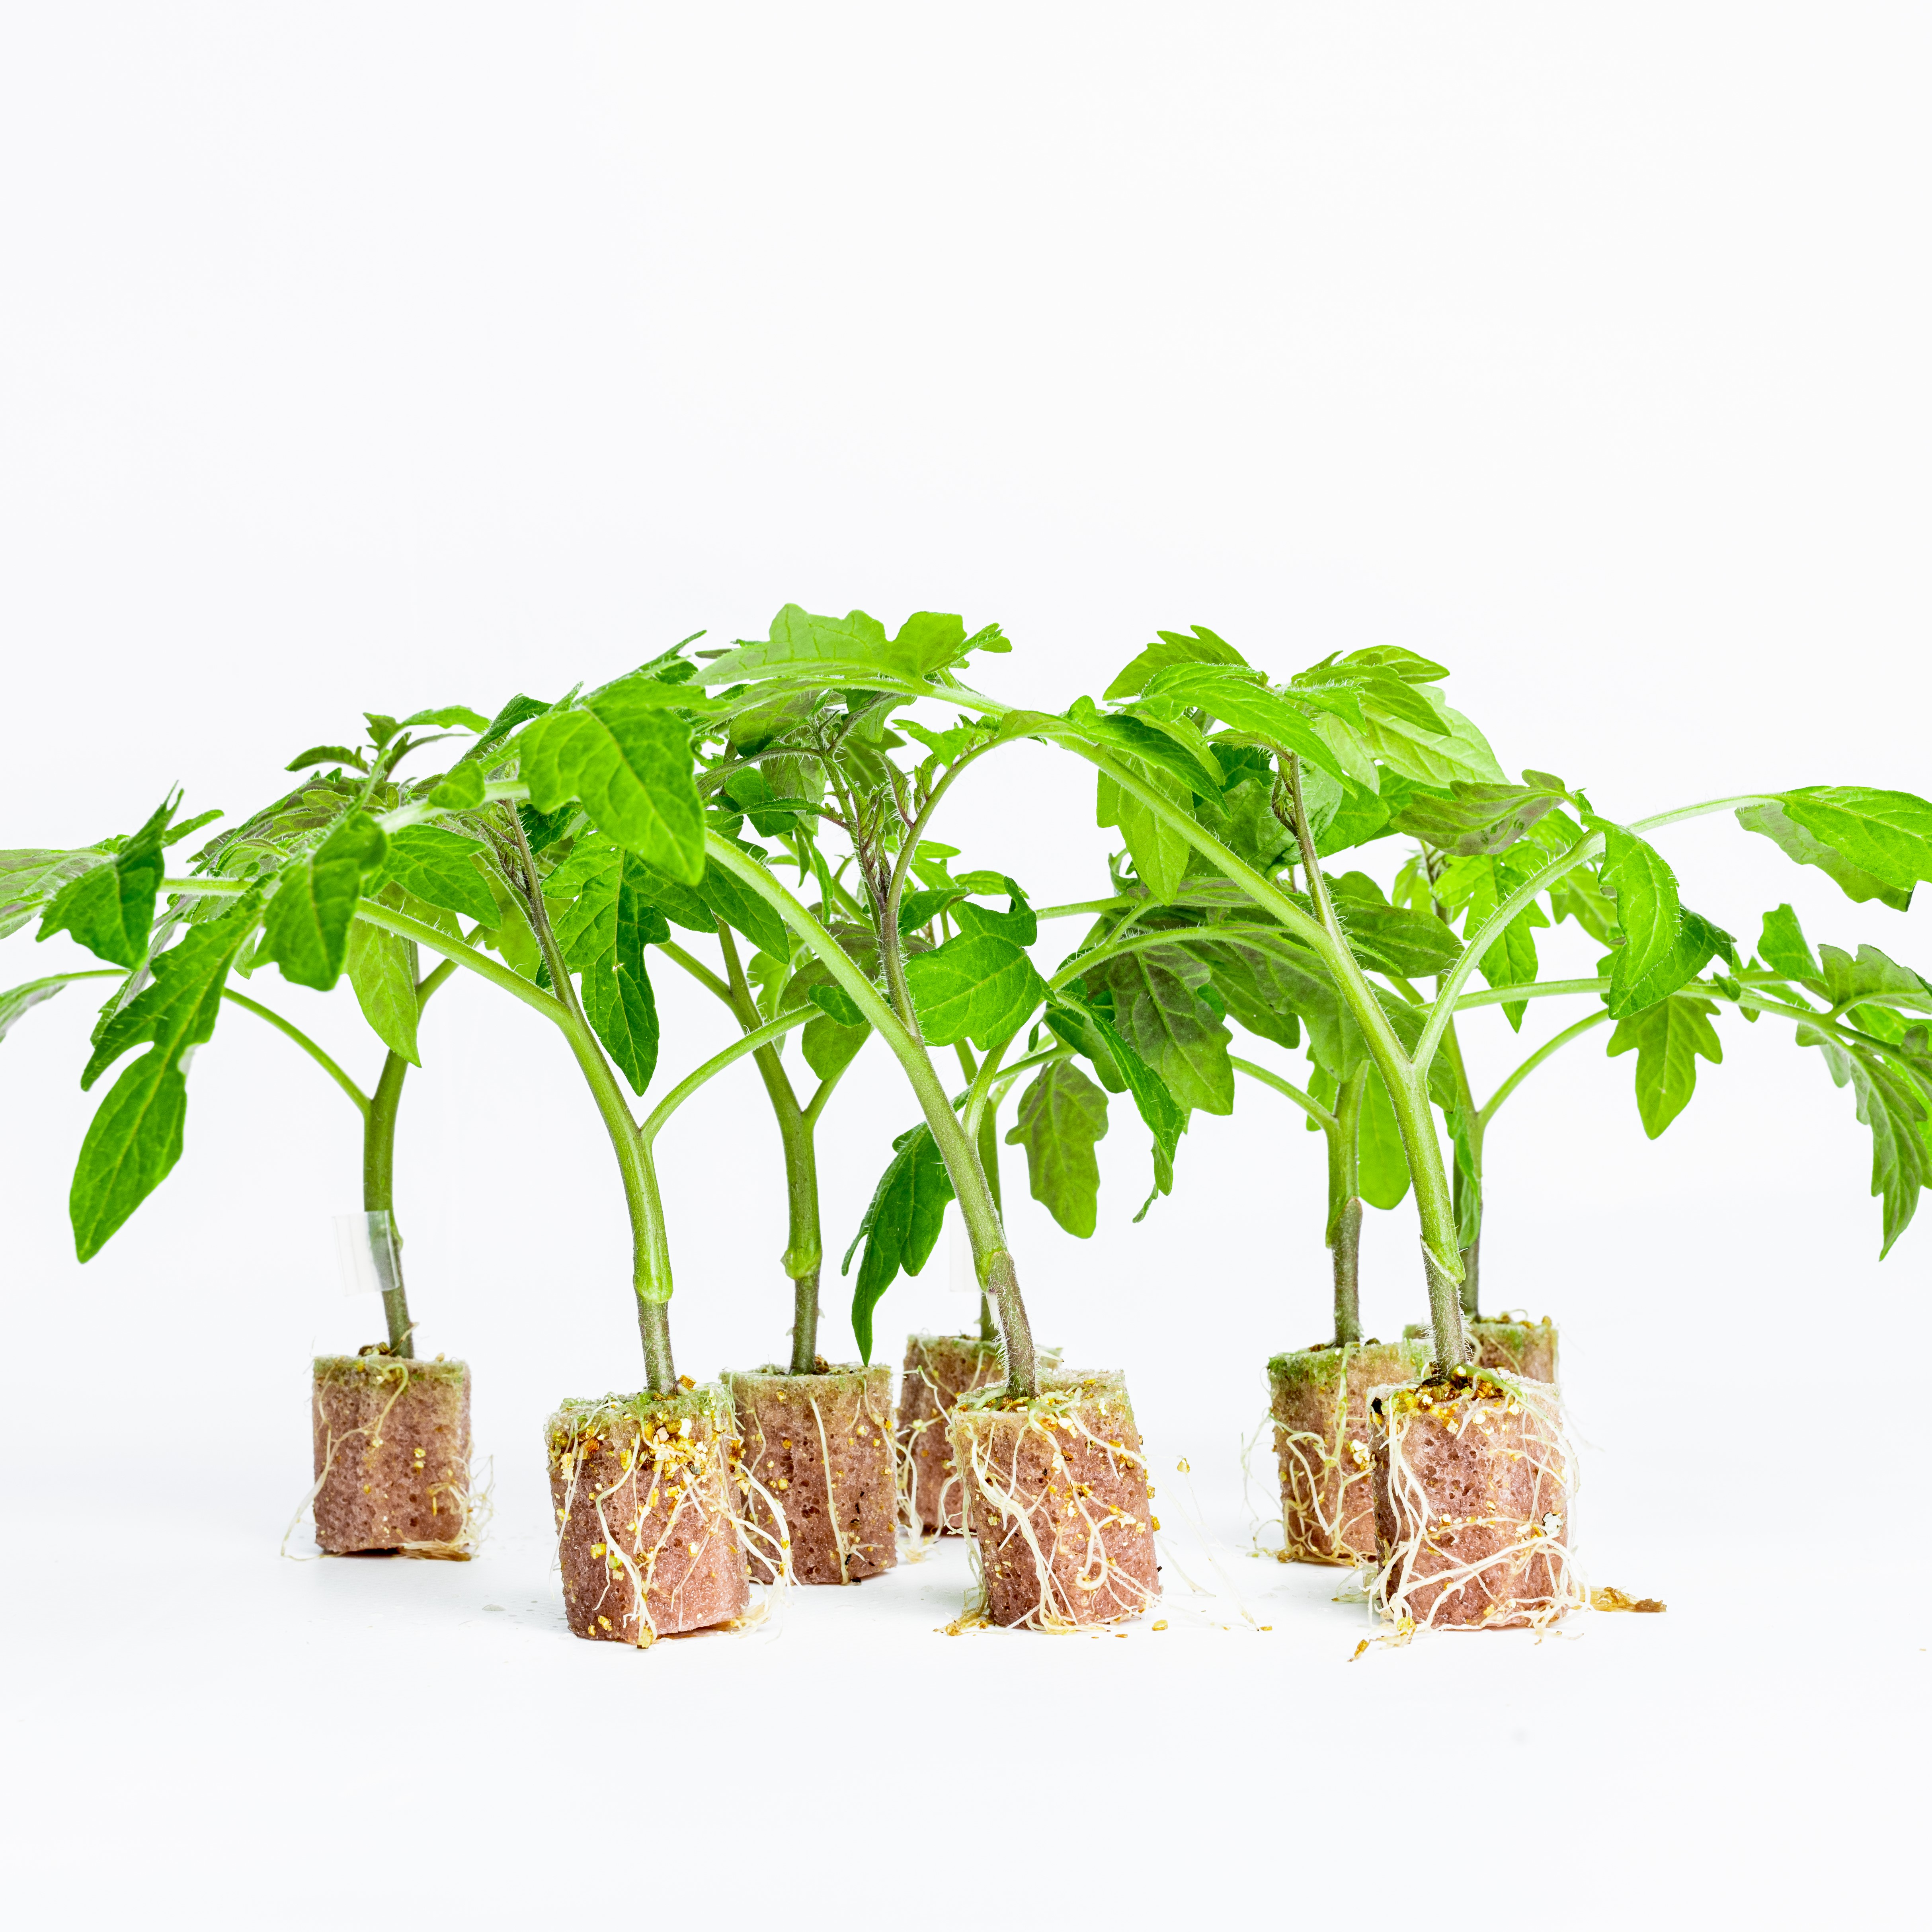 Groningen-based horticulture start-up receives 2 million for developing biodegradable foam substrate